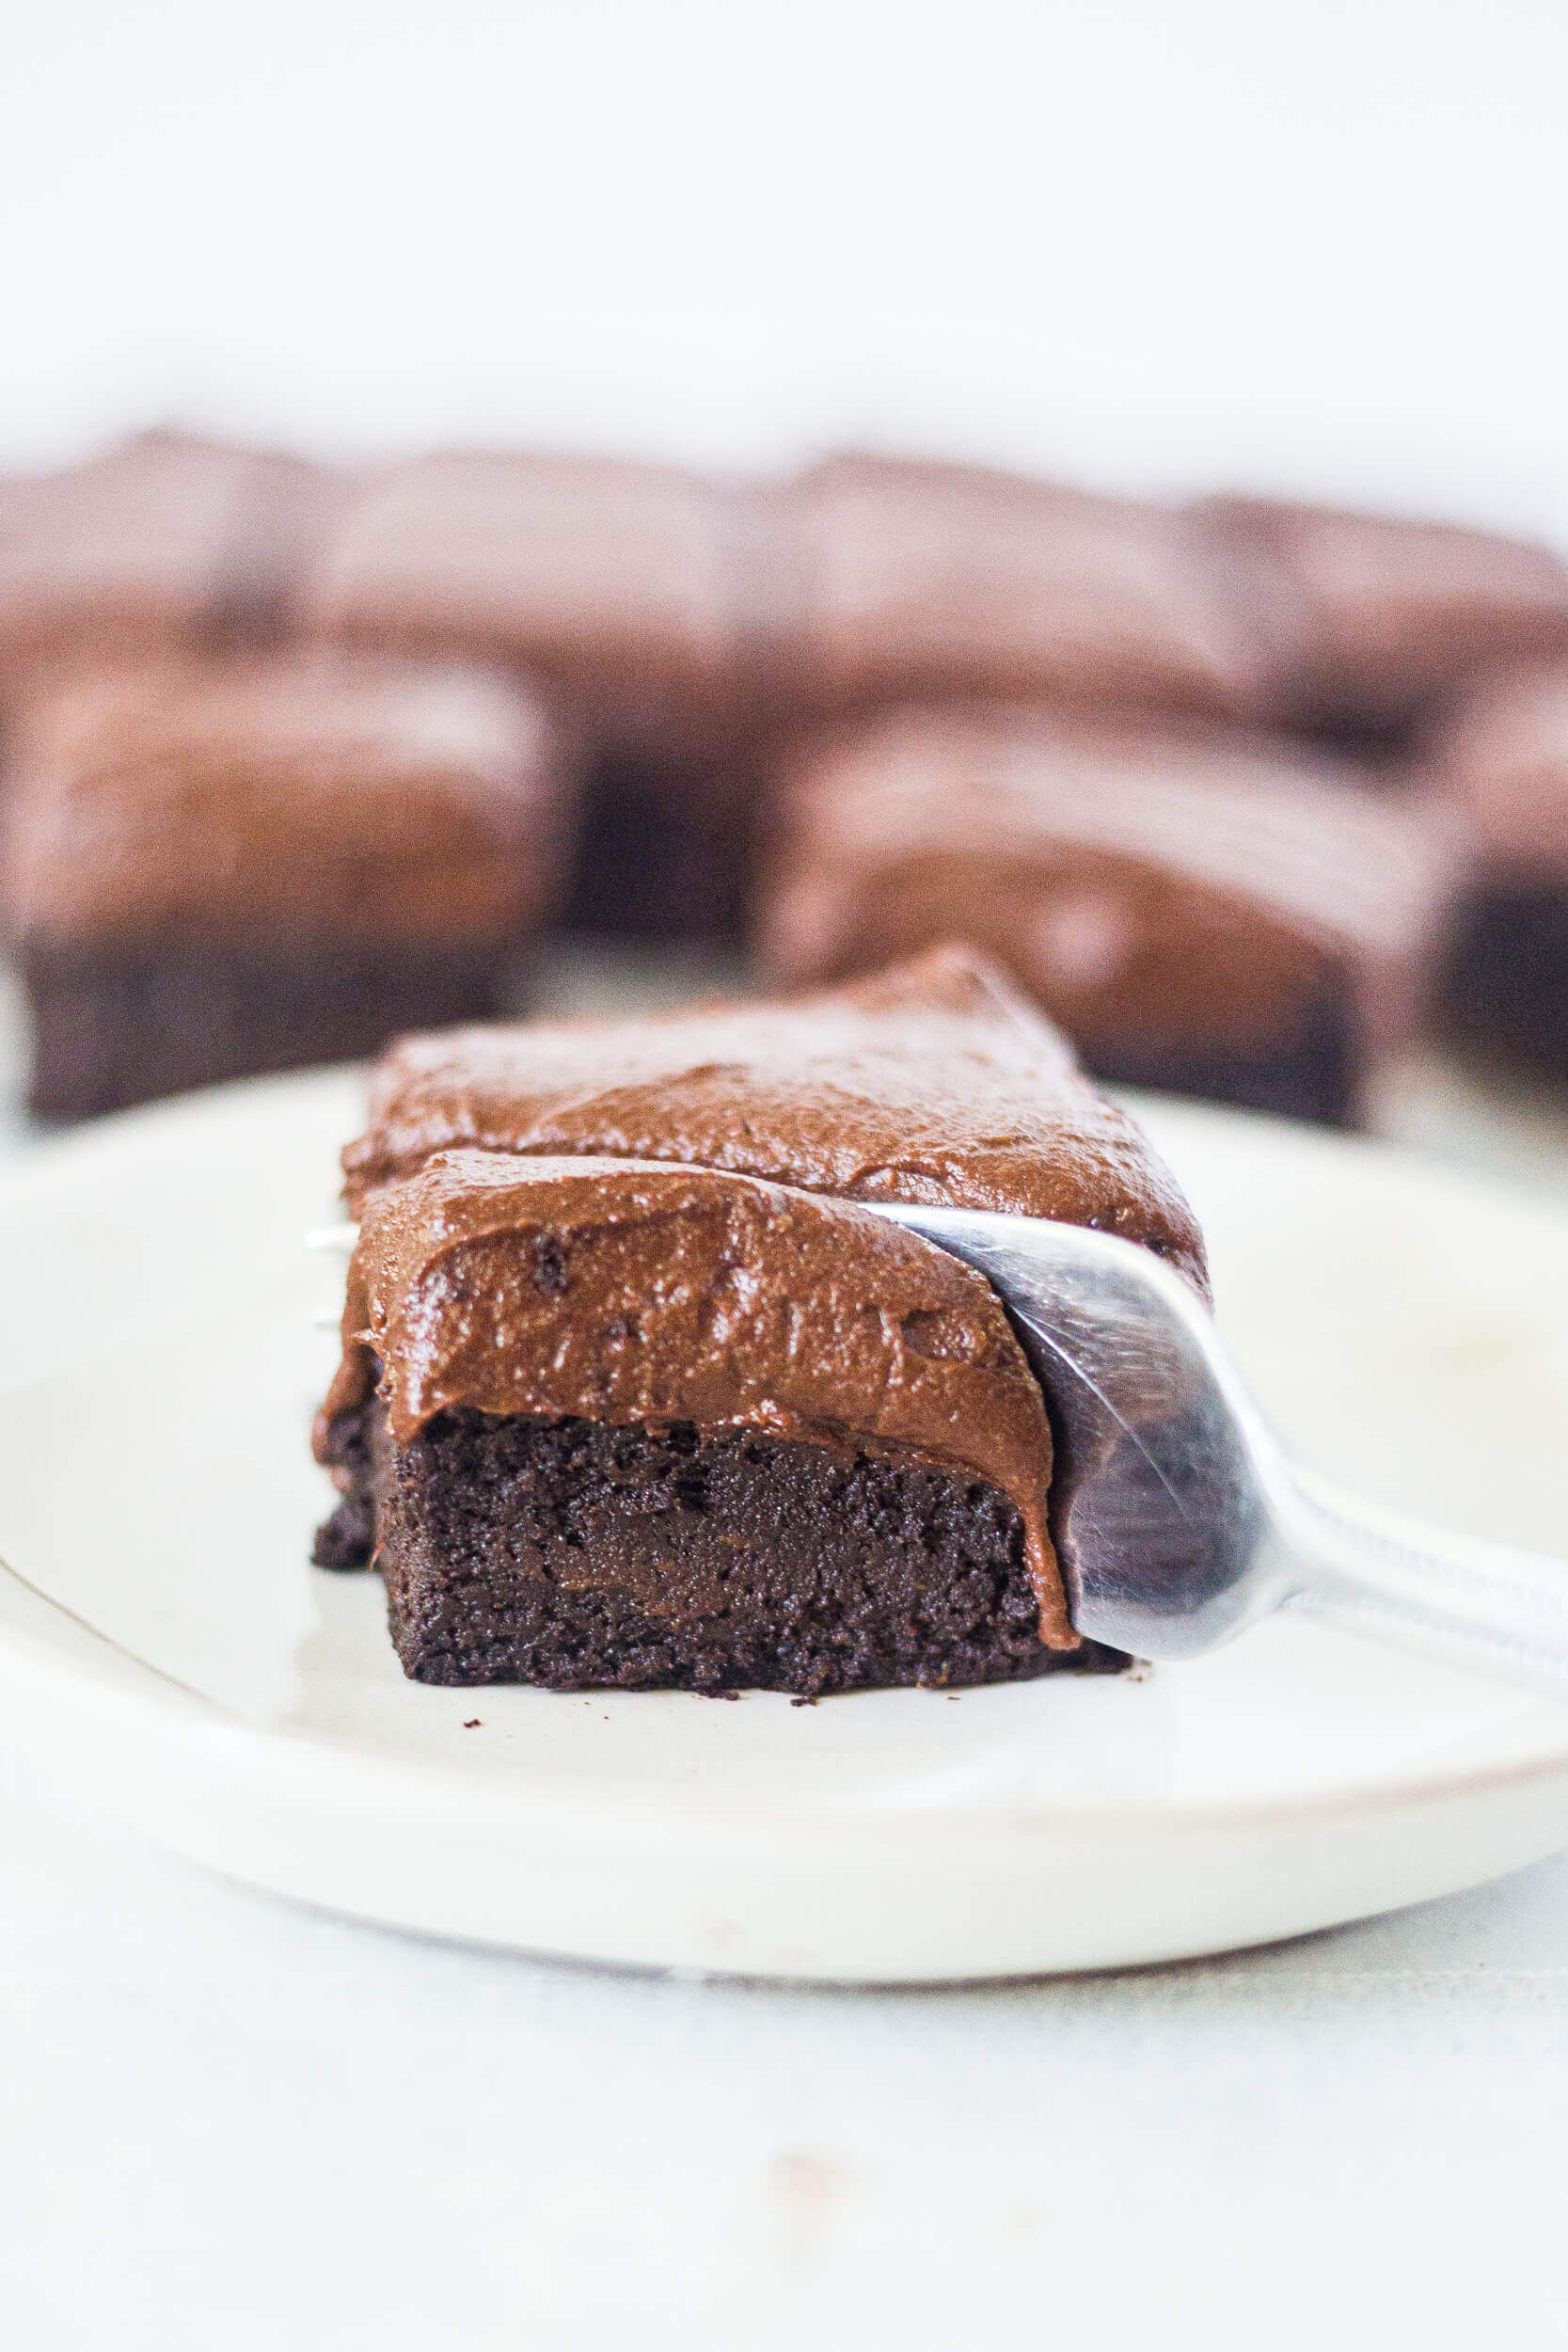 fork cutting into sweet potato cake with chocolate frosting